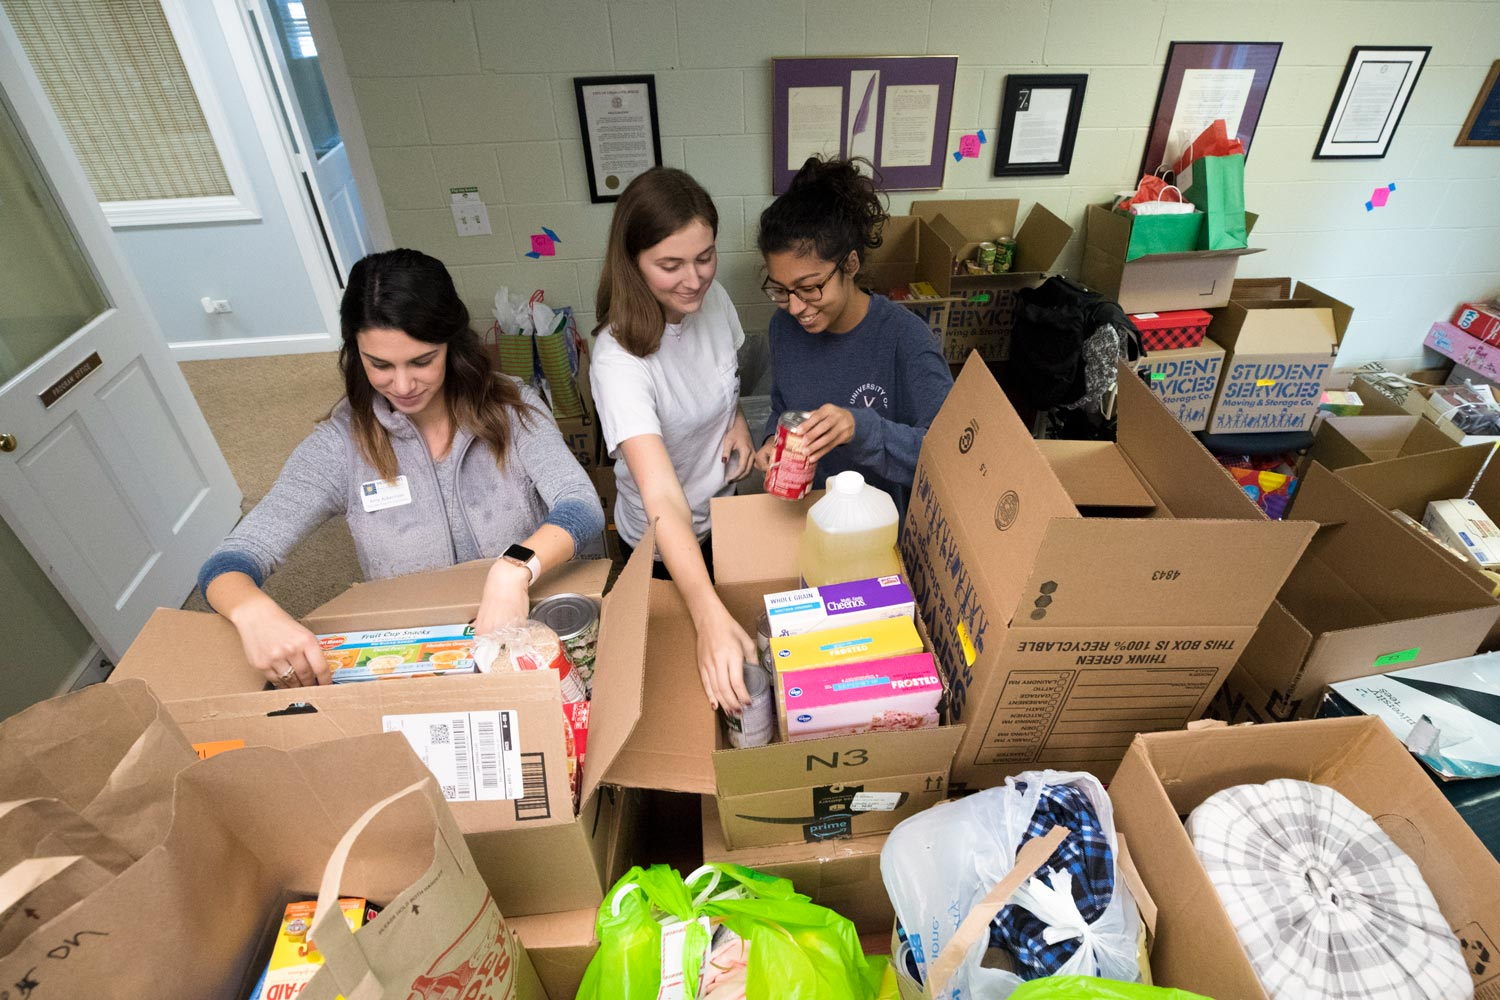 Madison House student volunteers with the Holiday Sharing program (from left) Amy Ackerman, Ally Bollettino and Salwa Malik organize boxes of food and gift for local families in need.